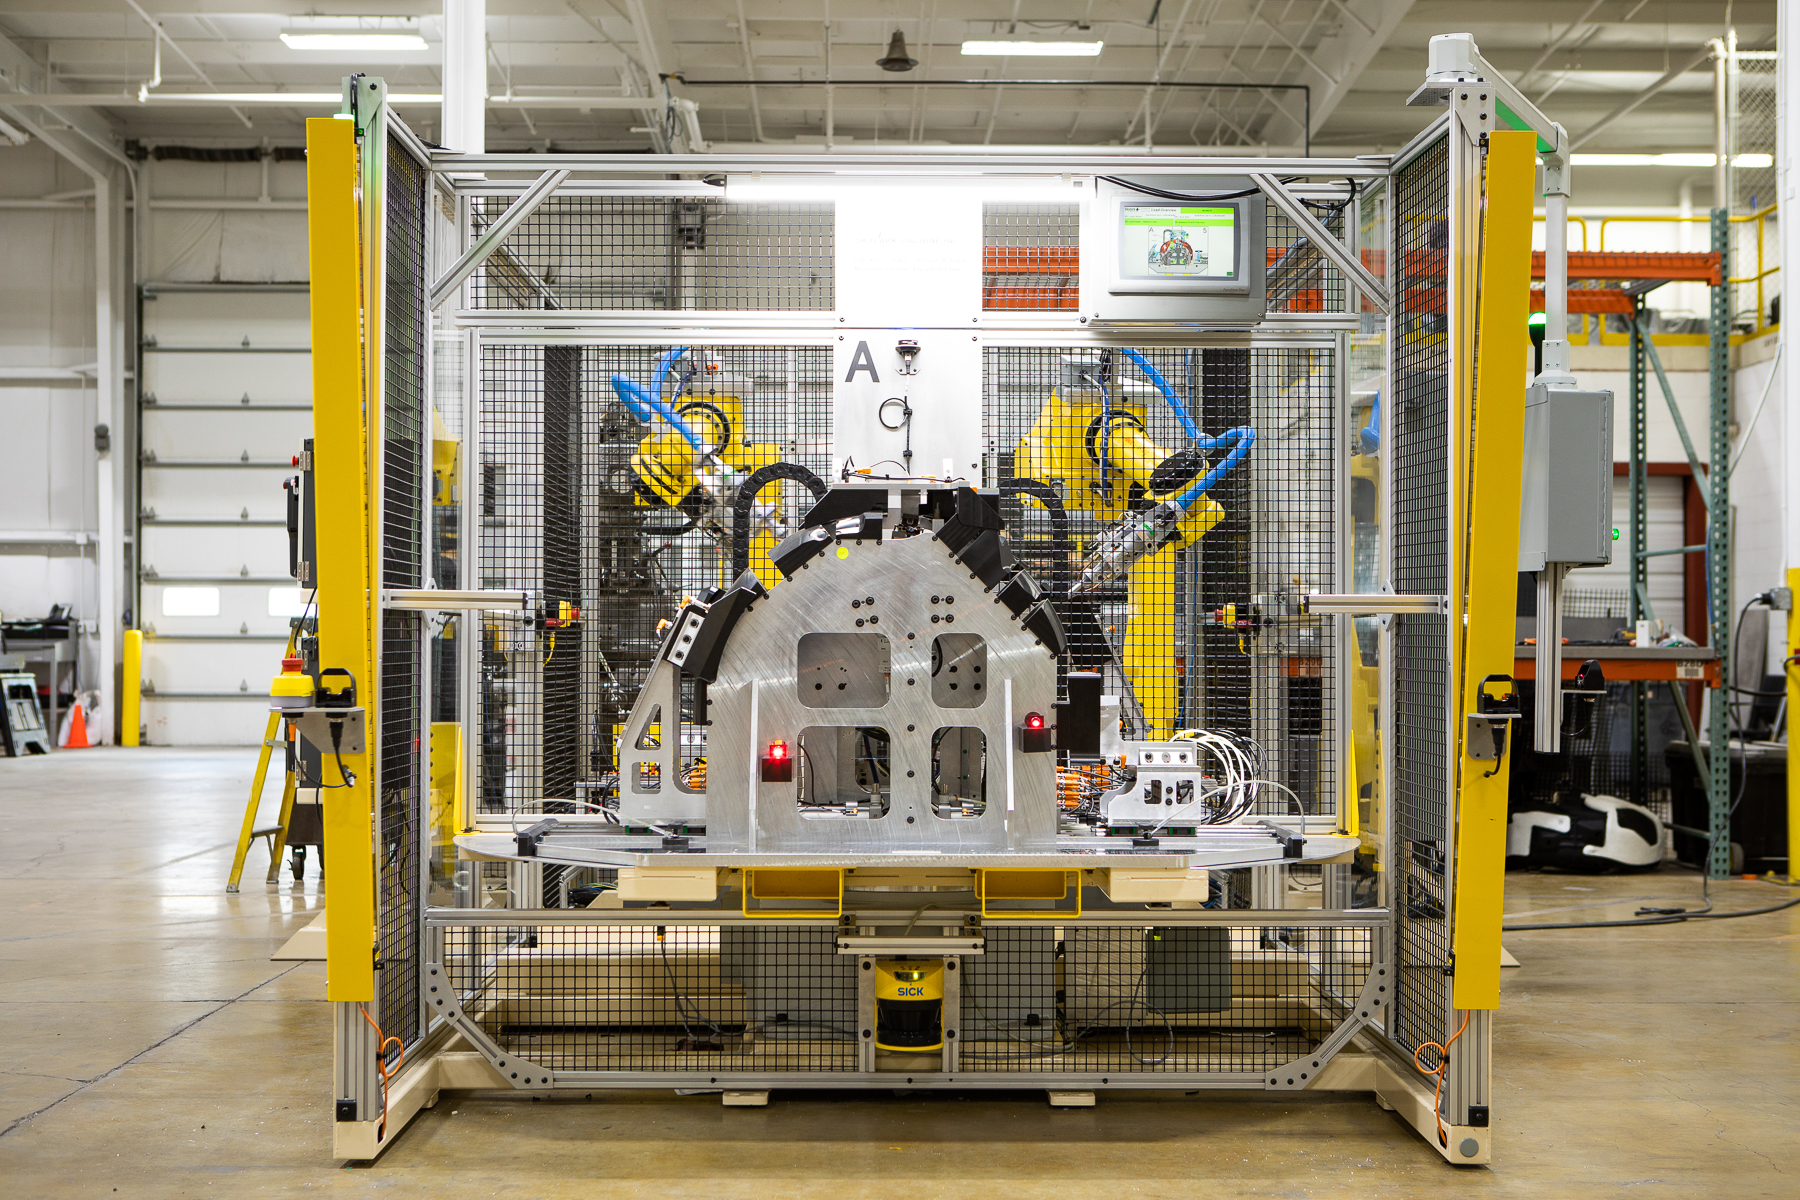 Automation - We can design and build an affordable solution for any product or process that requires automation